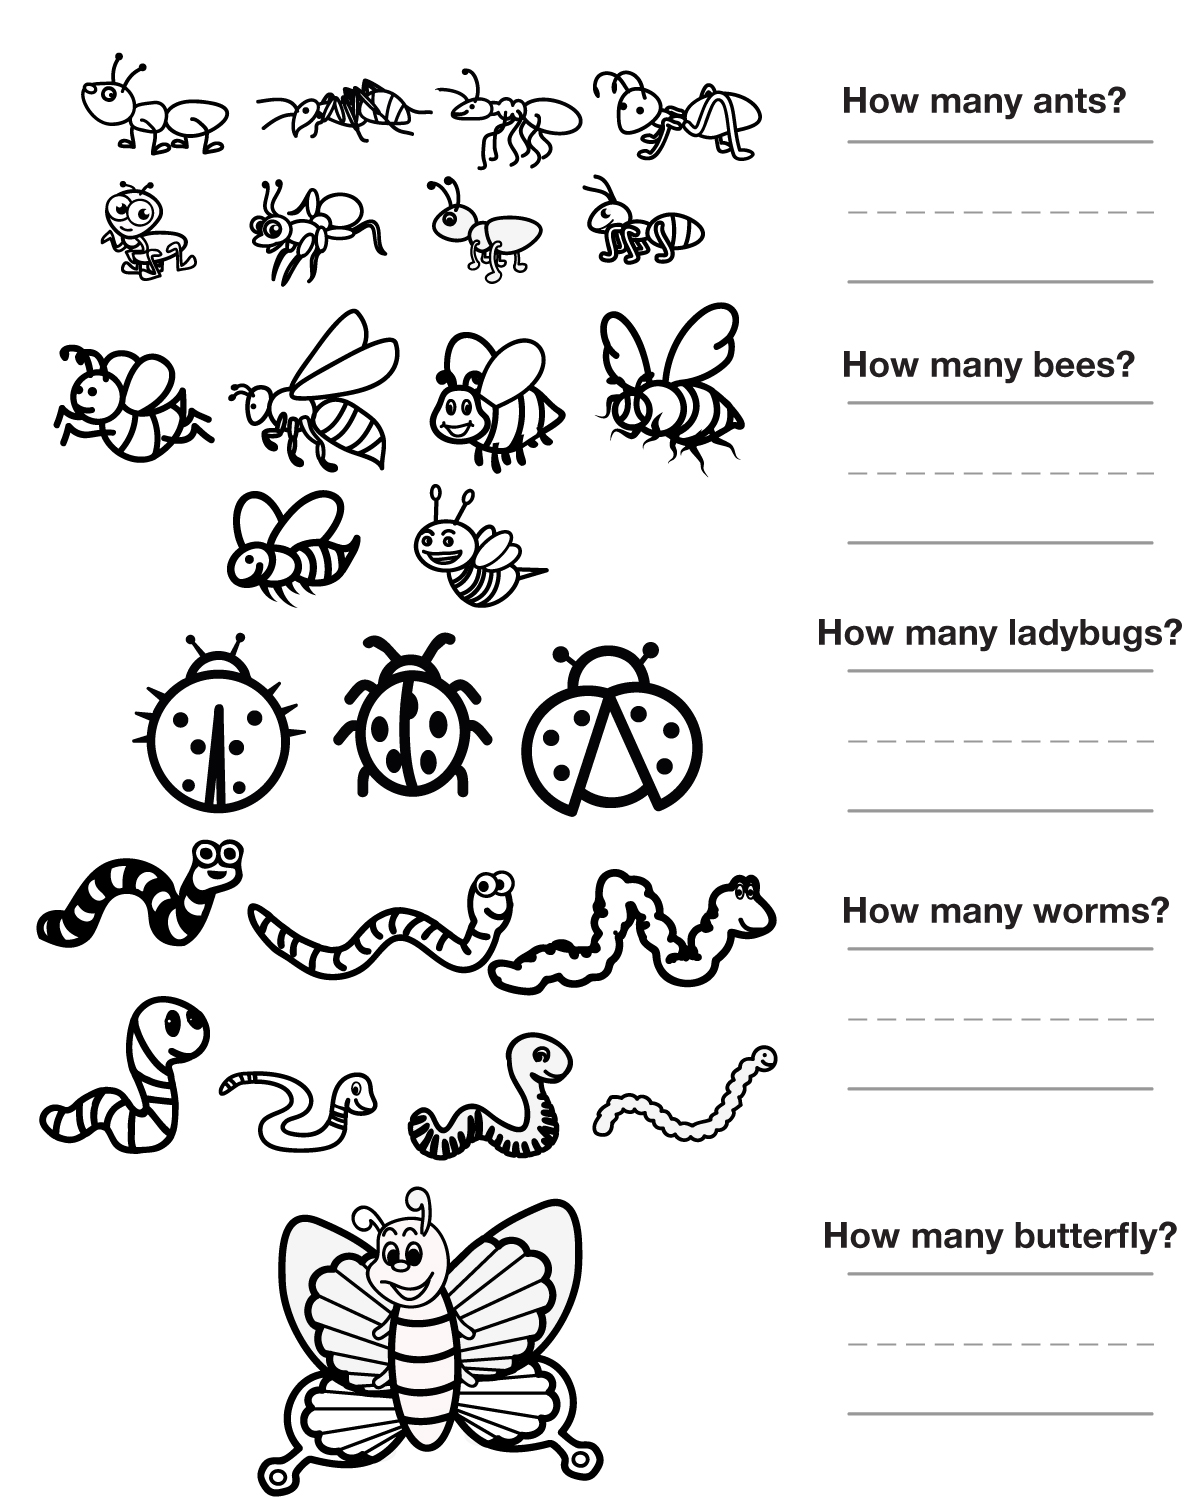 Other Graphical Works For Kids To Color And Count